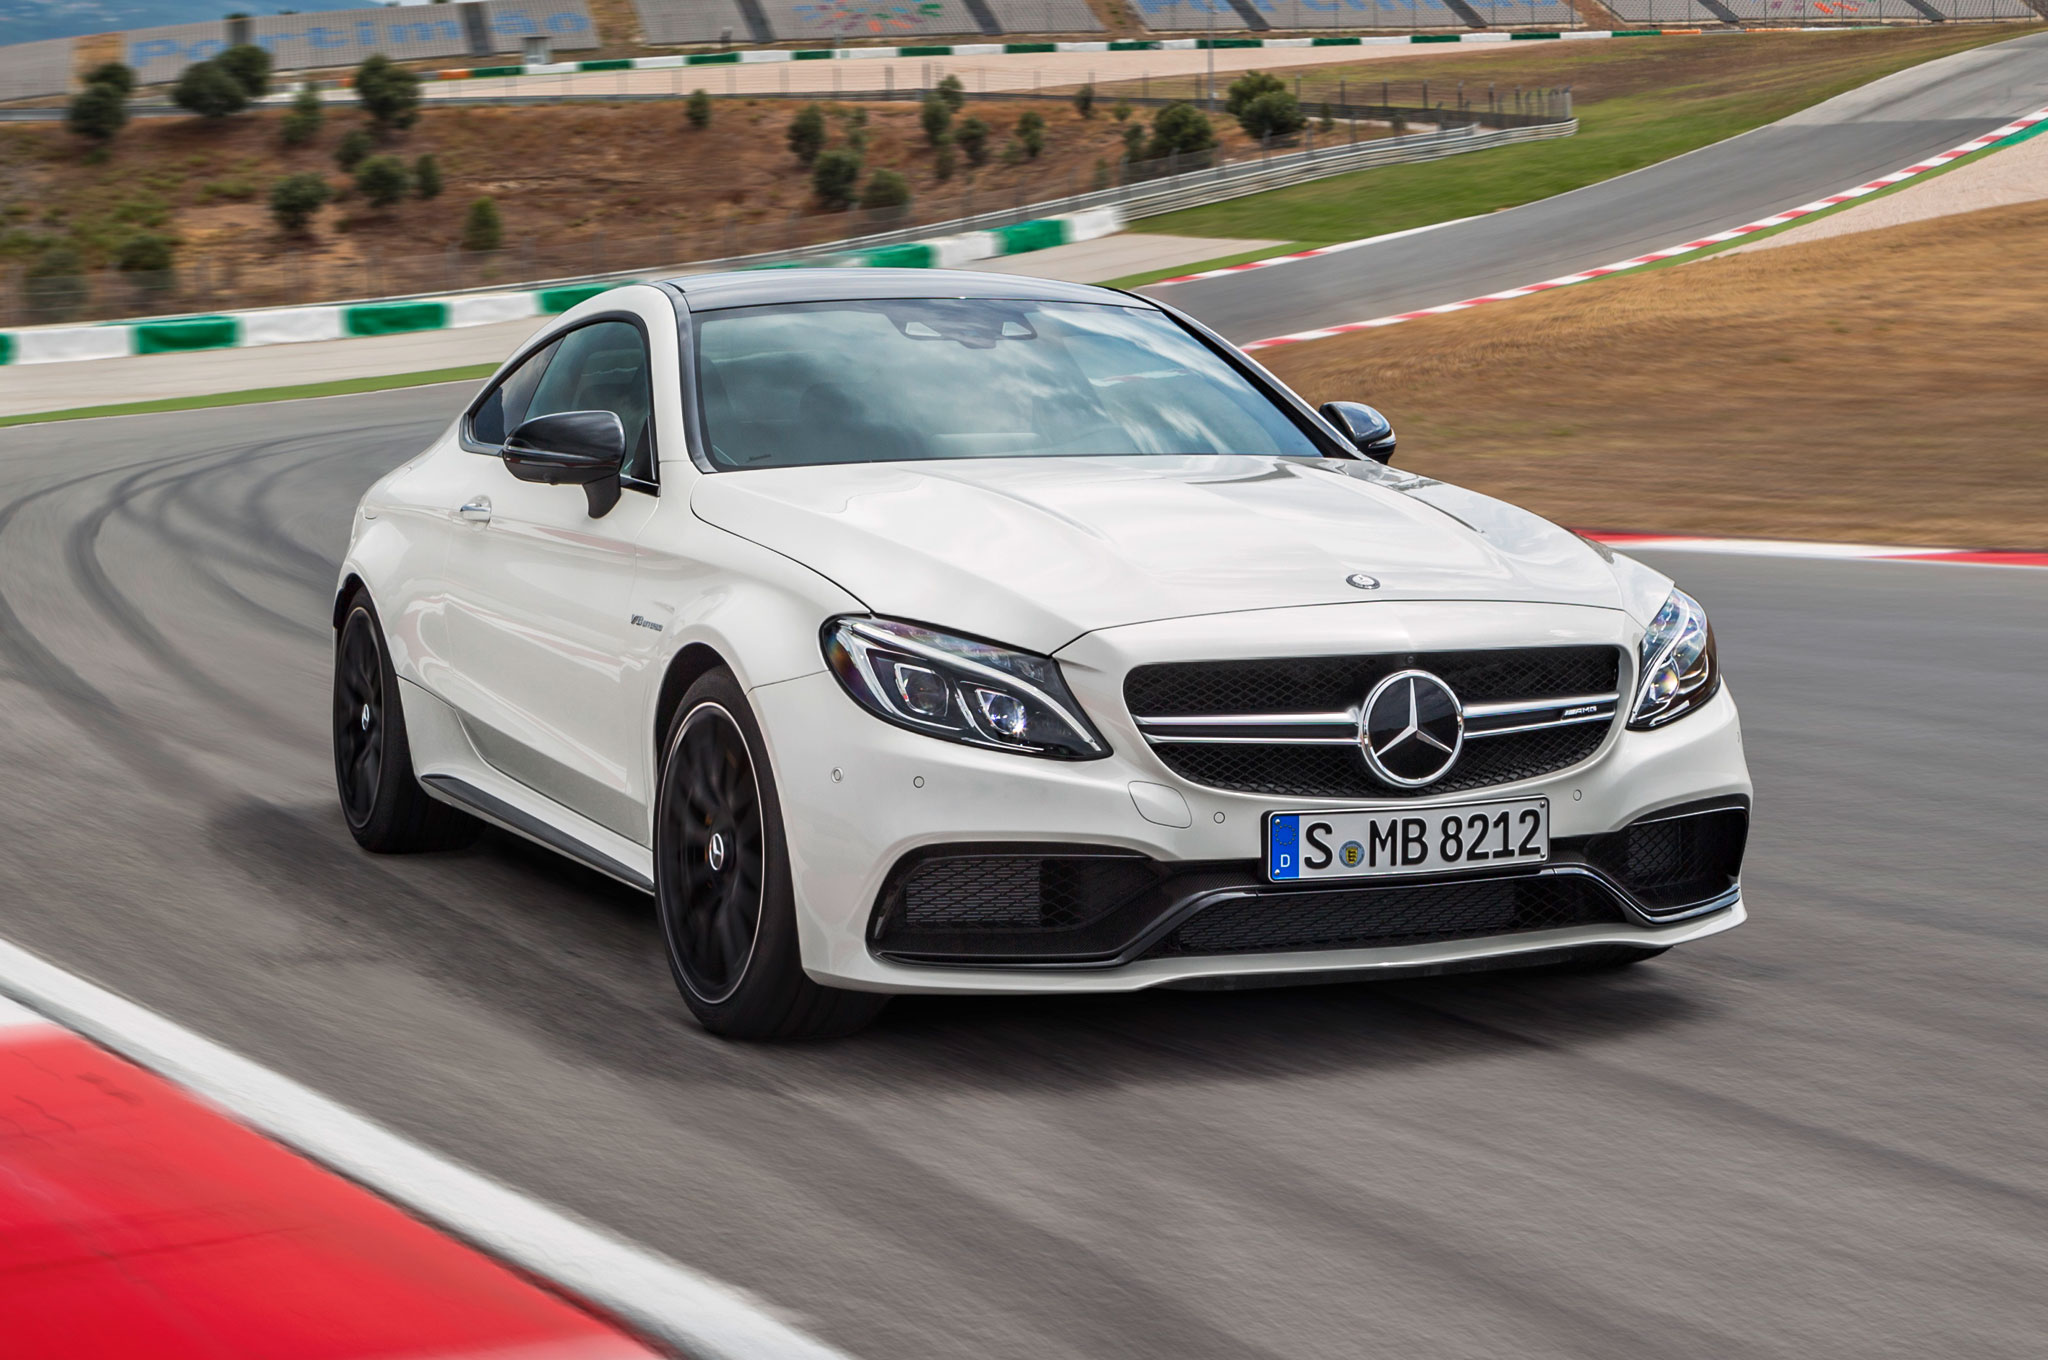 2017 mercedes amg c63 coupe brings twin turbo punch with. Black Bedroom Furniture Sets. Home Design Ideas